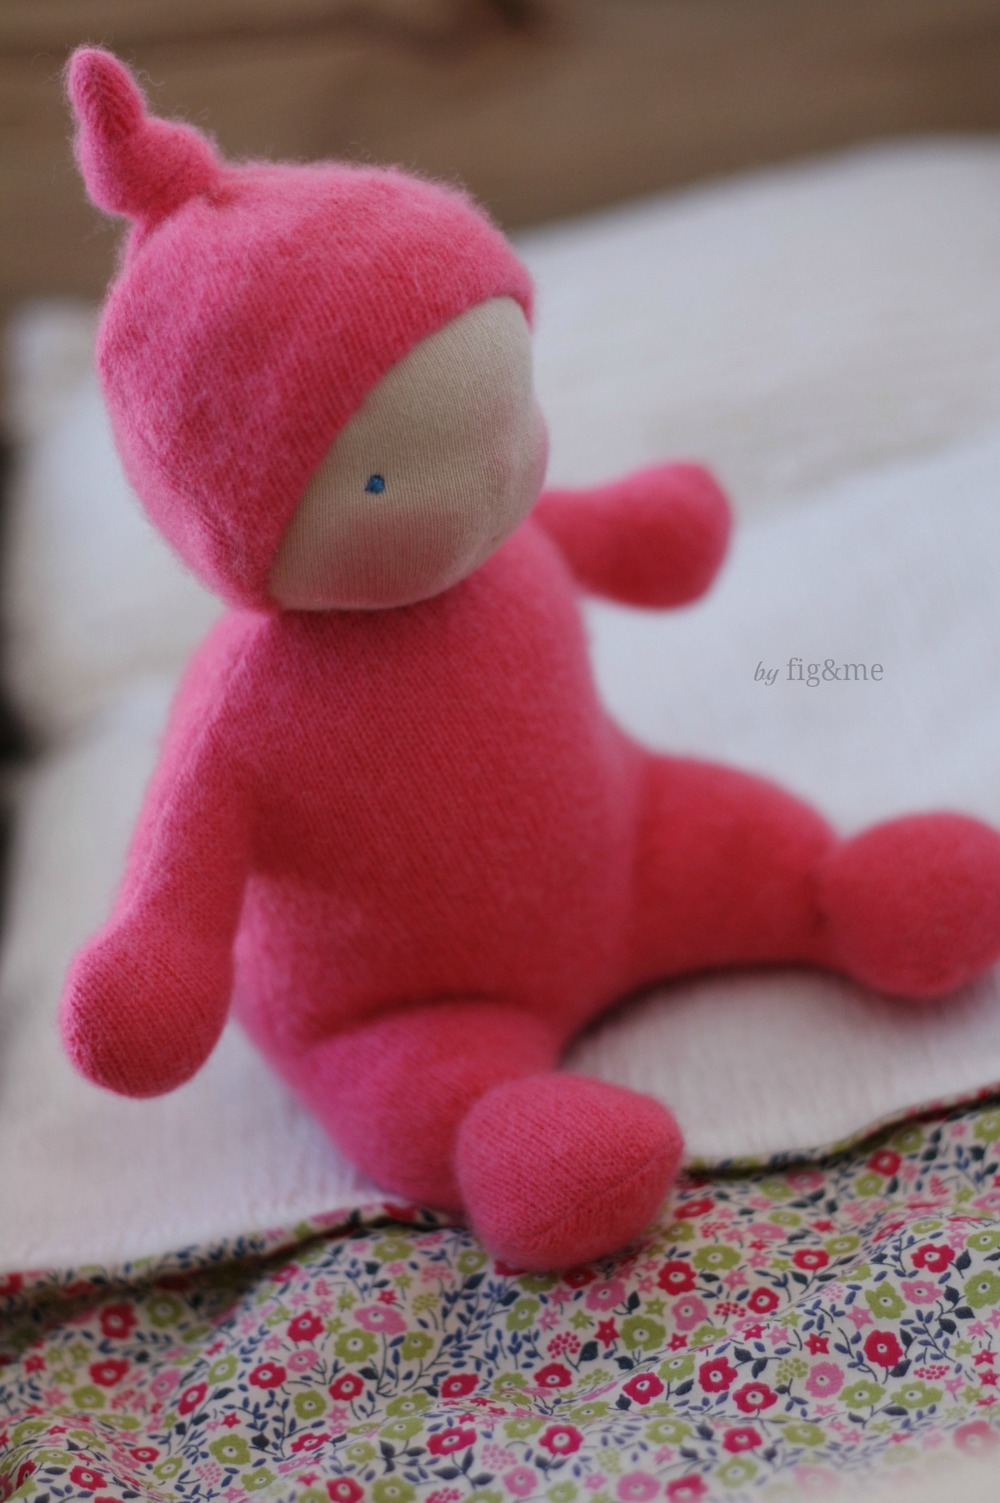 Sweet cashmere baby doll, by Fig&me.